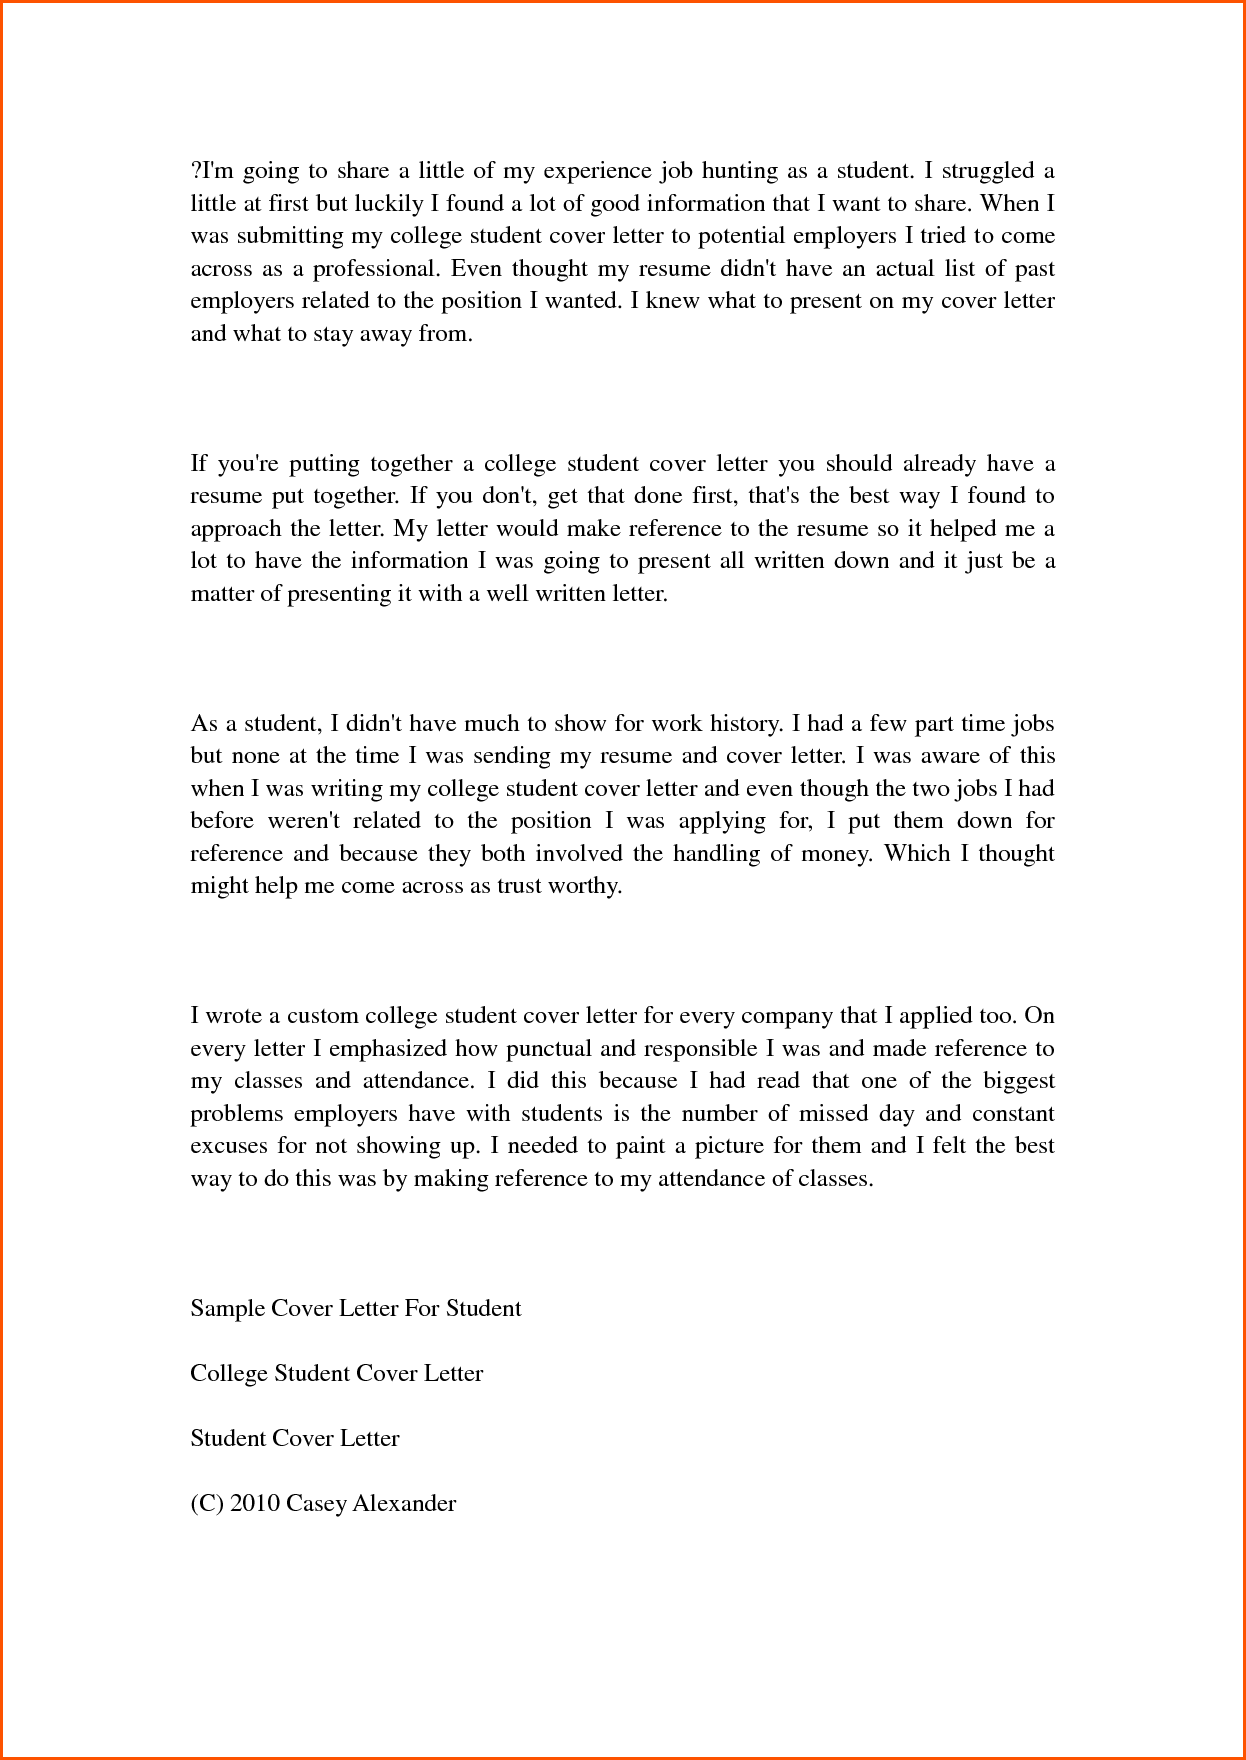 College Student Cover Letter Samples Denial Sample Help High